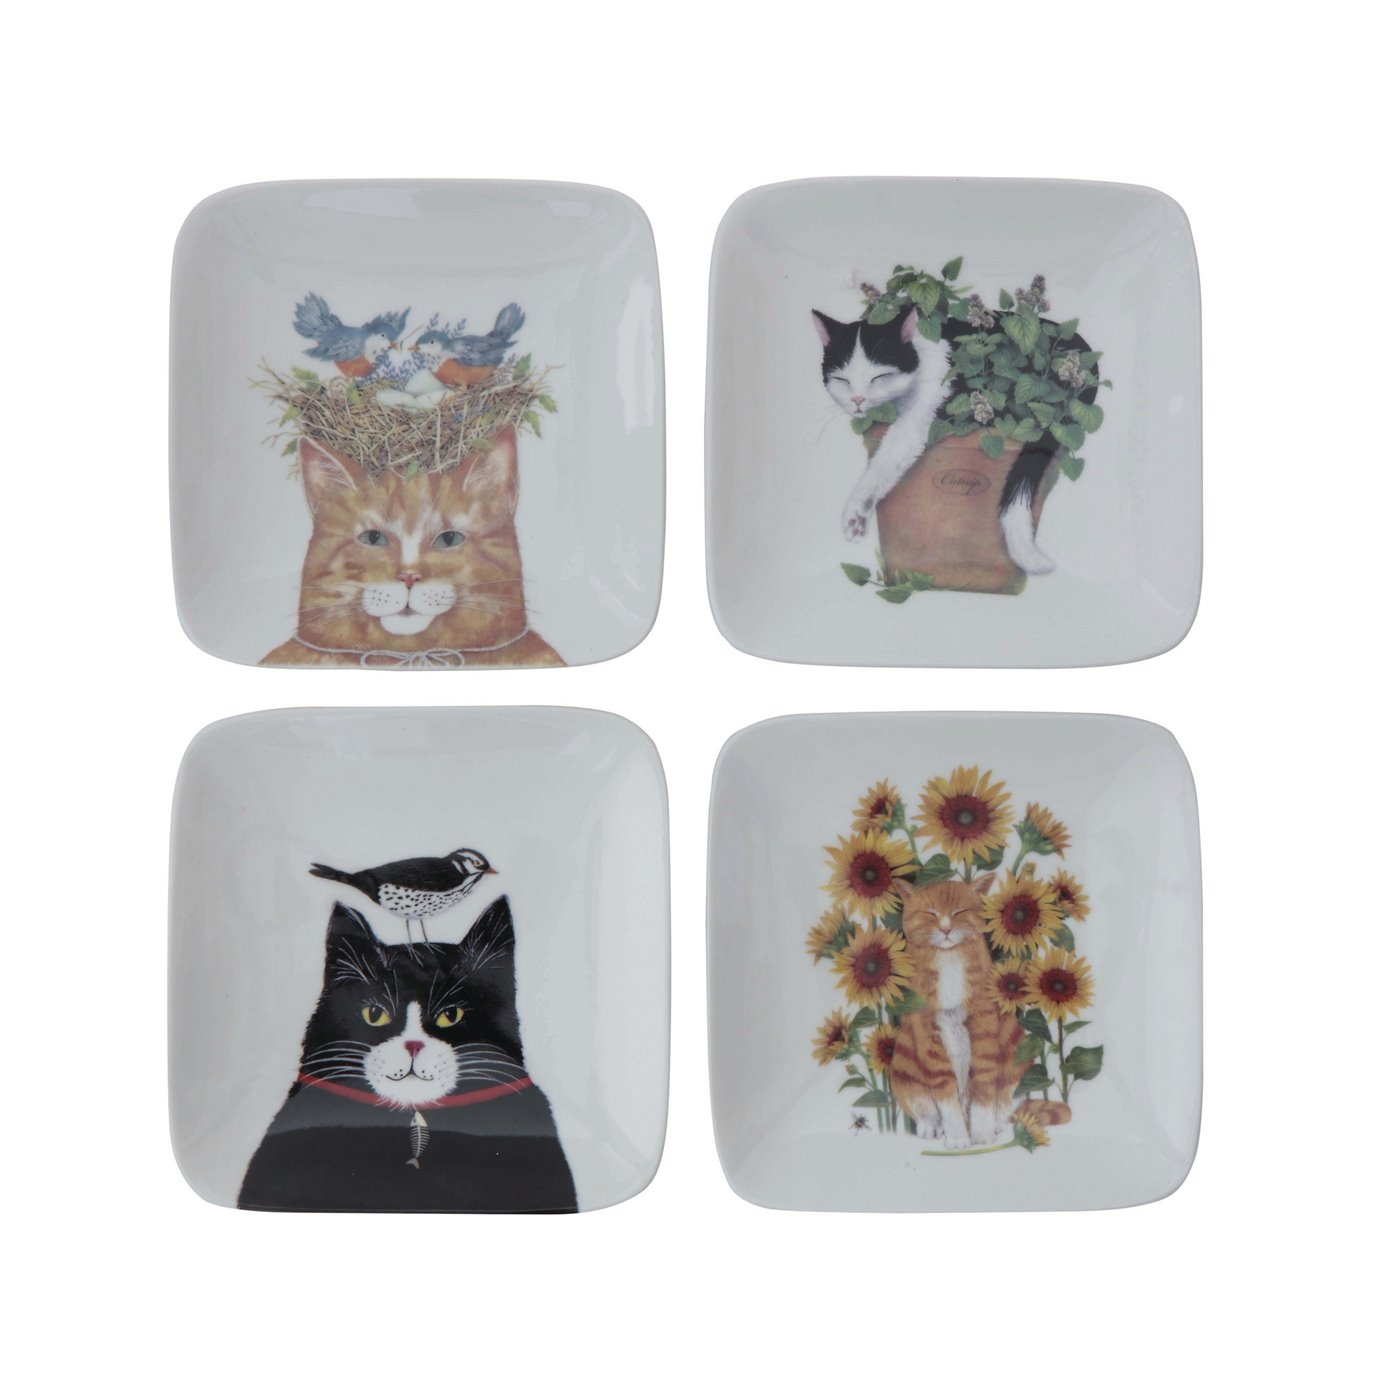 Square Stoneware Plate with Cat Image (Set of 4 Styles)